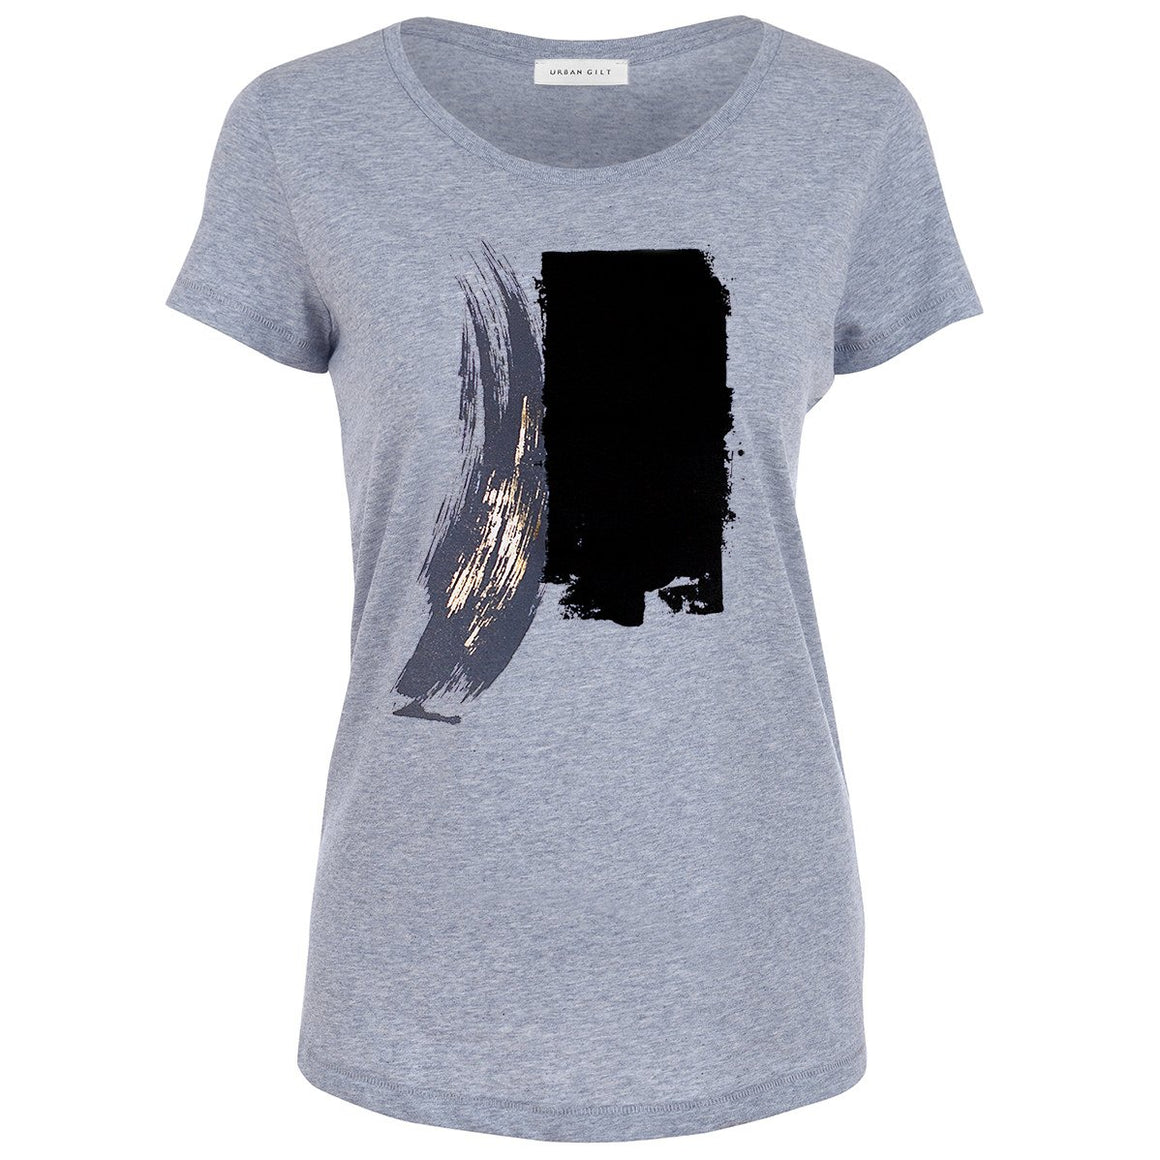 Maltby Grey Abstract Paint Stroke Print T-shirt Front View